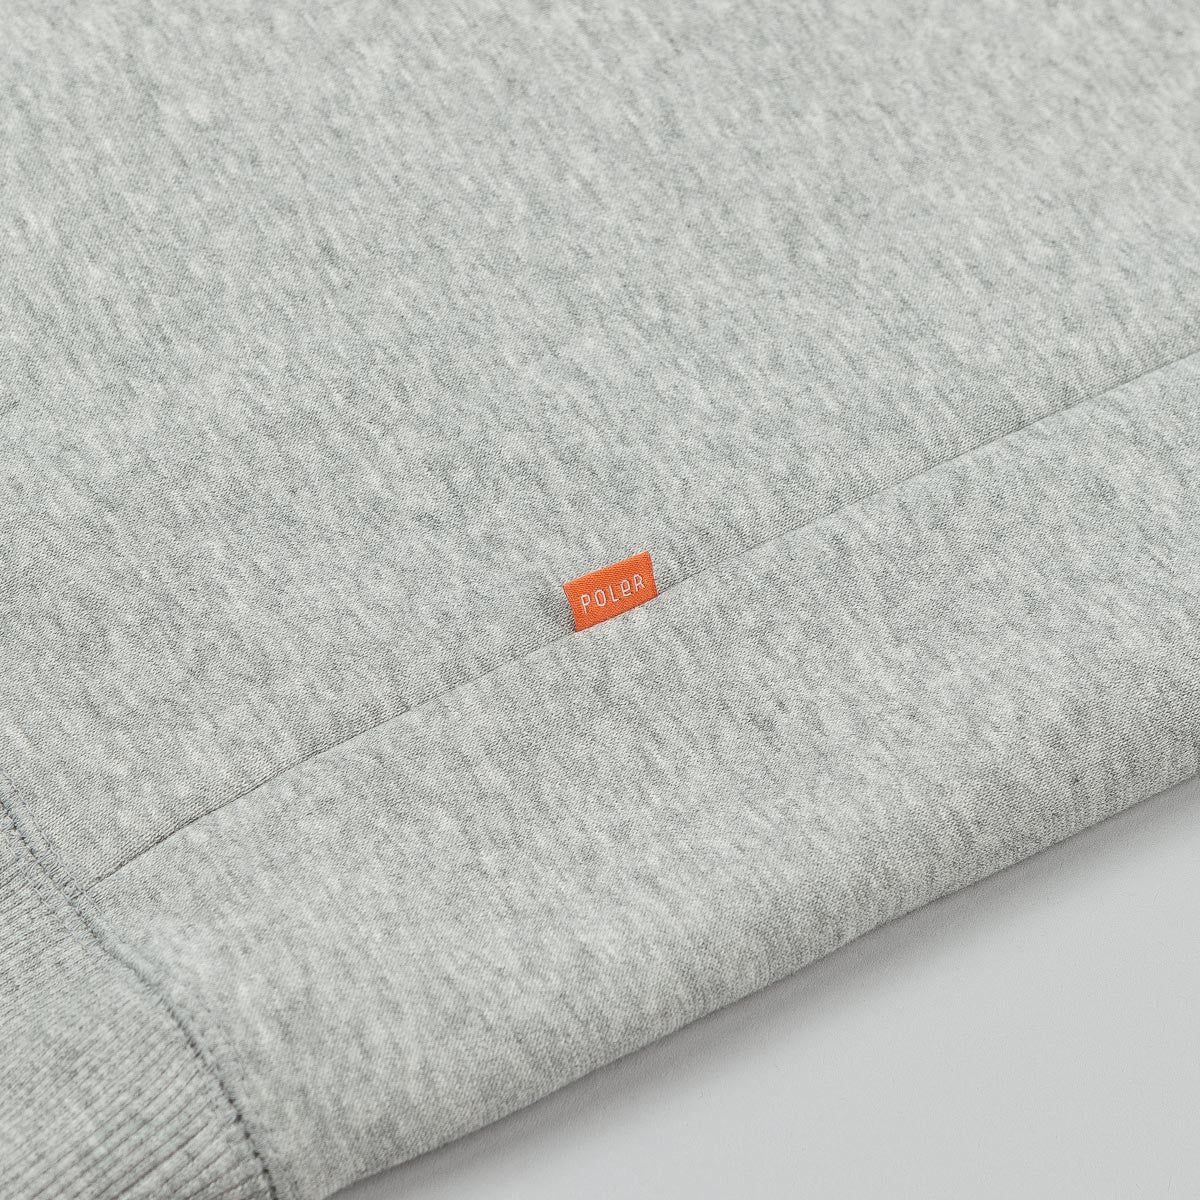 Nike SB X Poler Icon Crew Neck Sweatshirt - Dark Heather Grey / Urban Orange